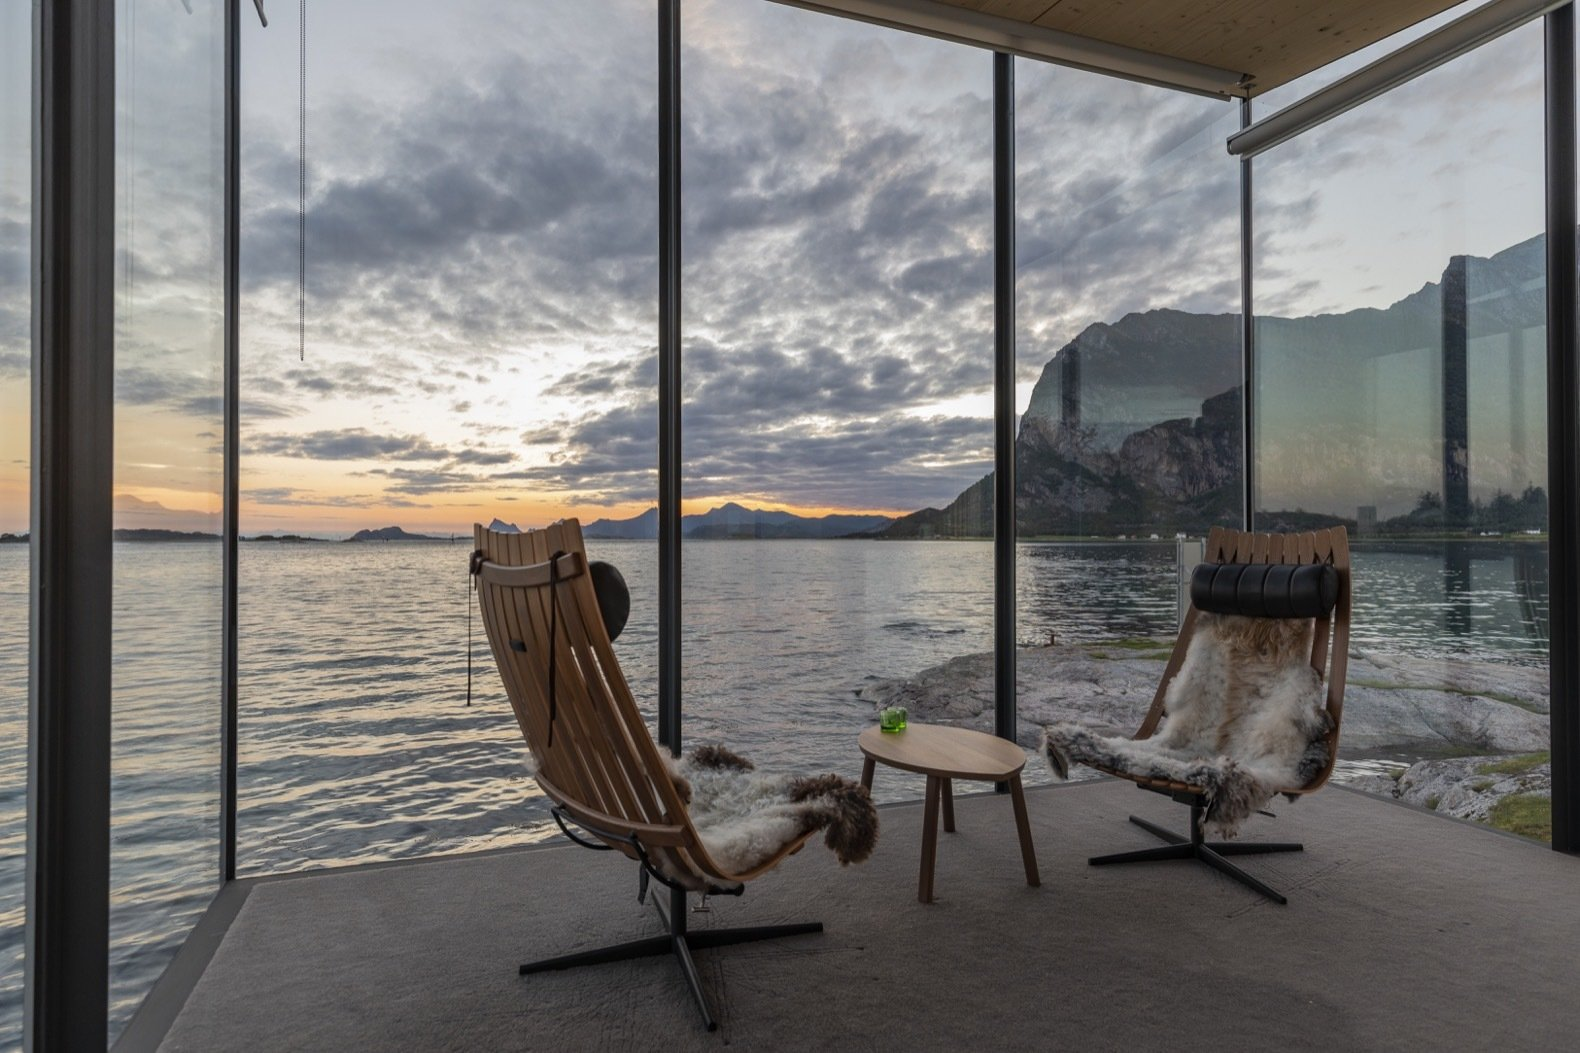 Sea Cabins by Snorre Stinessen